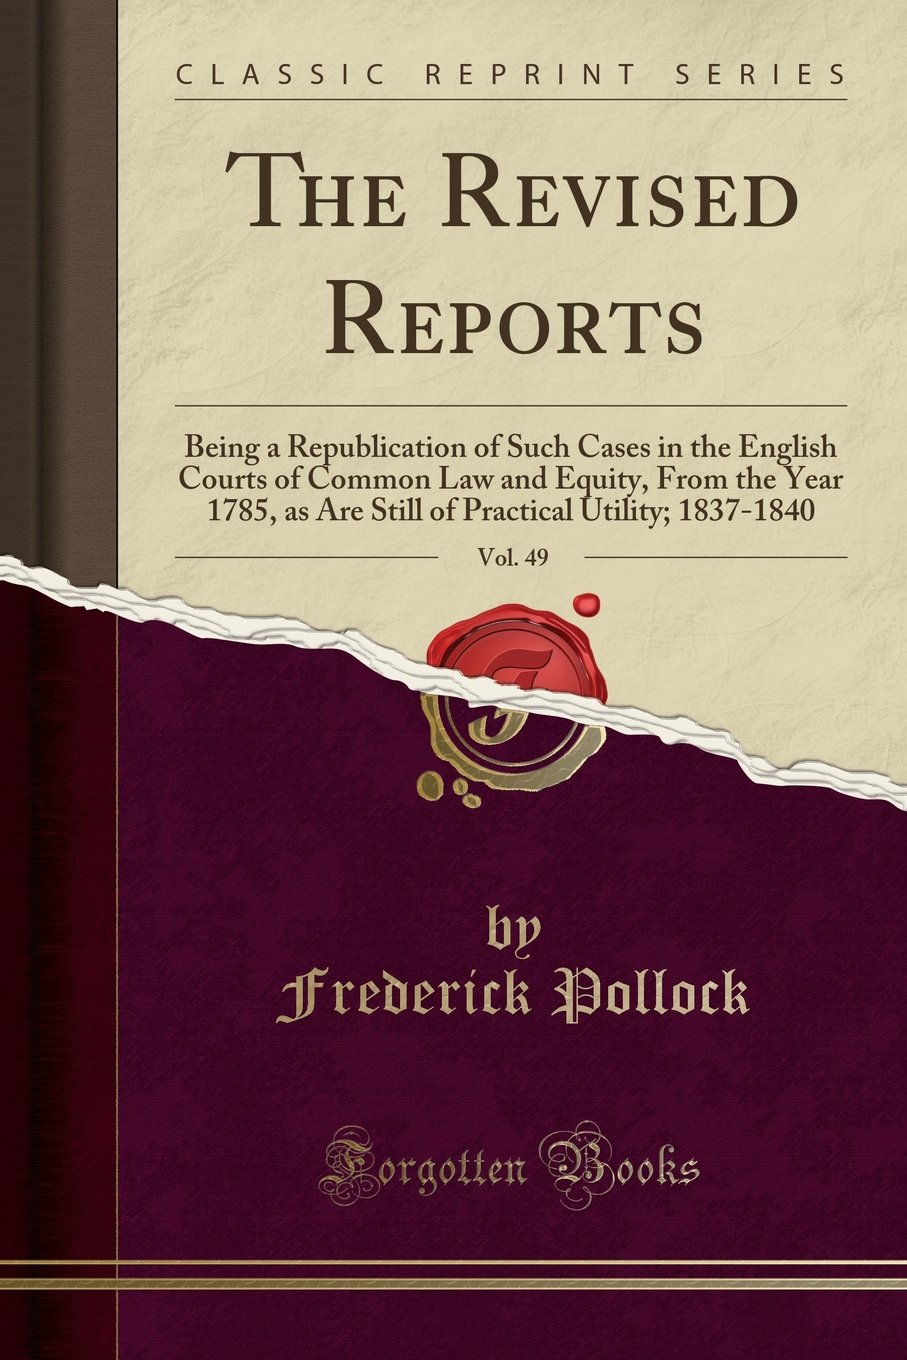 Read Online The Revised Reports, Vol. 49: Being a Republication of Such Cases in the English Courts of Common Law and Equity, From the Year 1785, as Are Still of Practical Utility; 1837-1840 (Classic Reprint) pdf